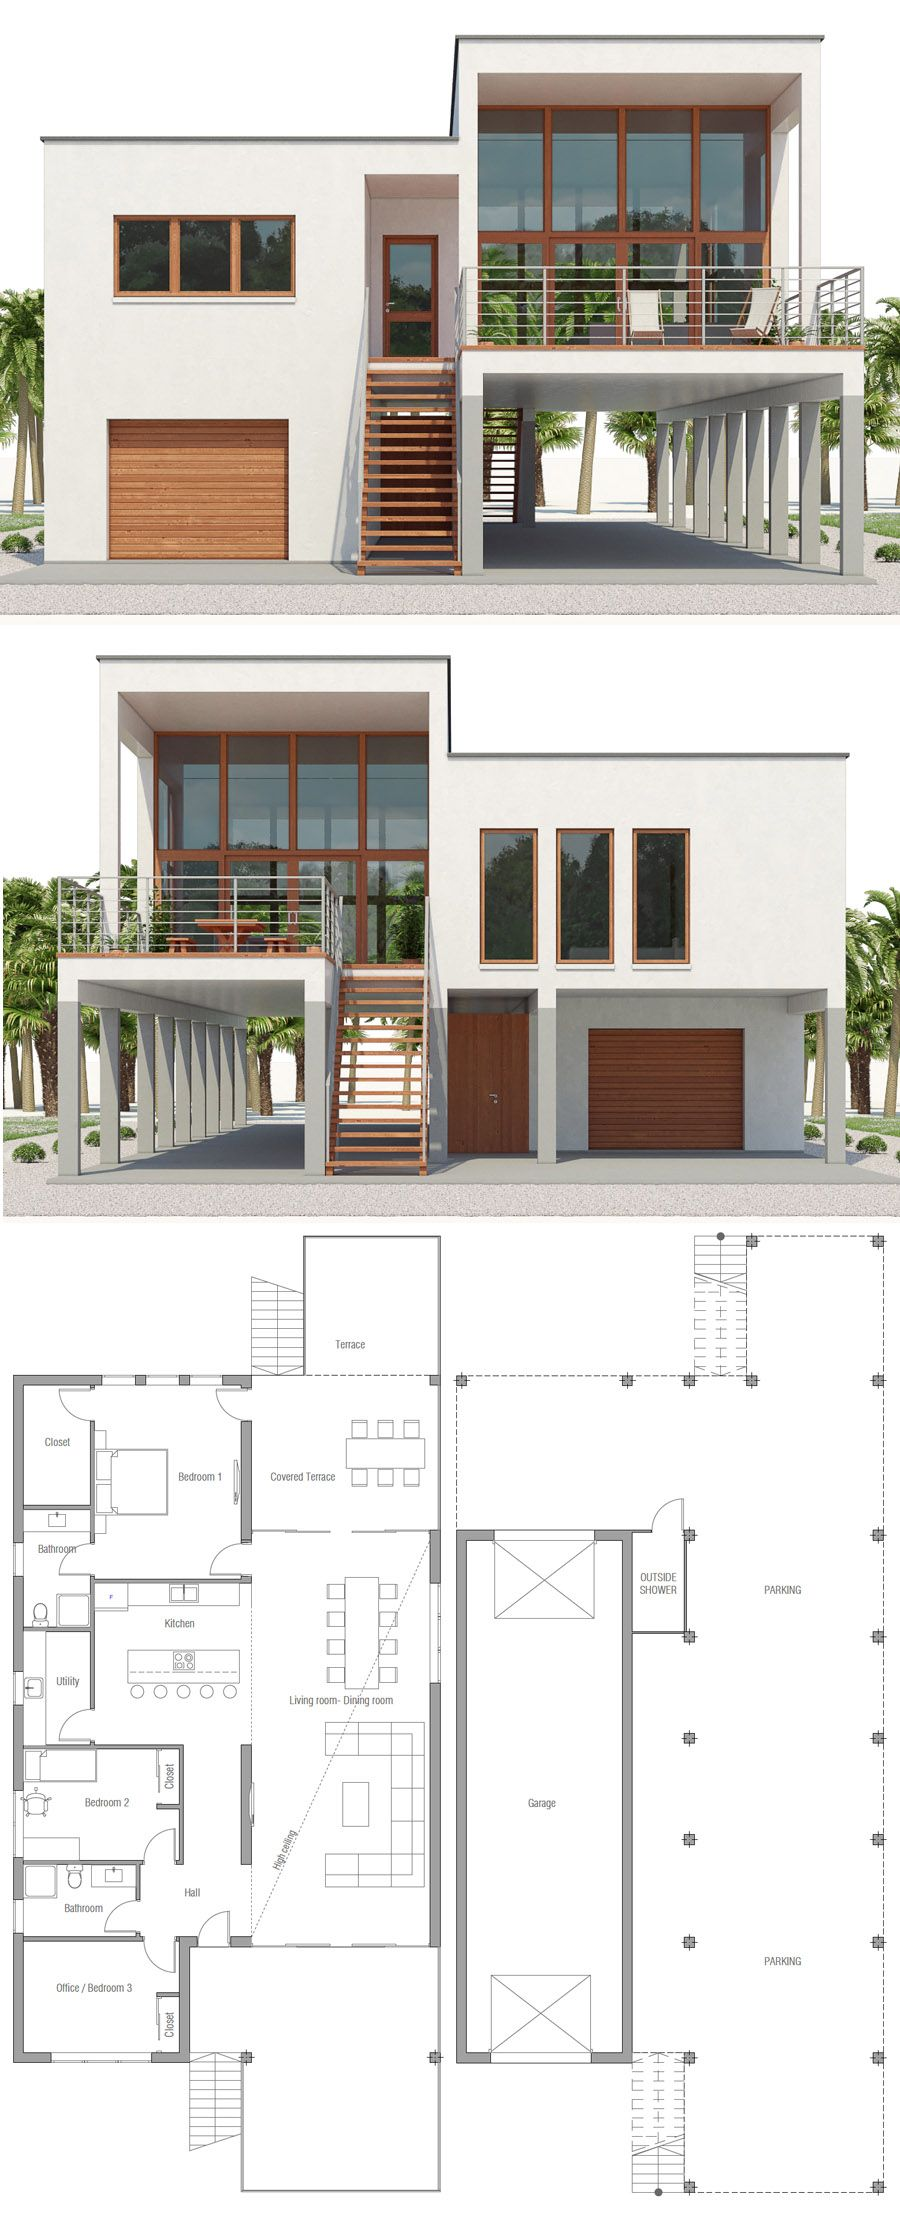 Coastal House Plan, Beach Home Plan, Home Plan, House Plans, Floor Plans #beachhouse #beachhousedecor #homedesign #homeplan #houseplans #adhouseplans #strandhuis